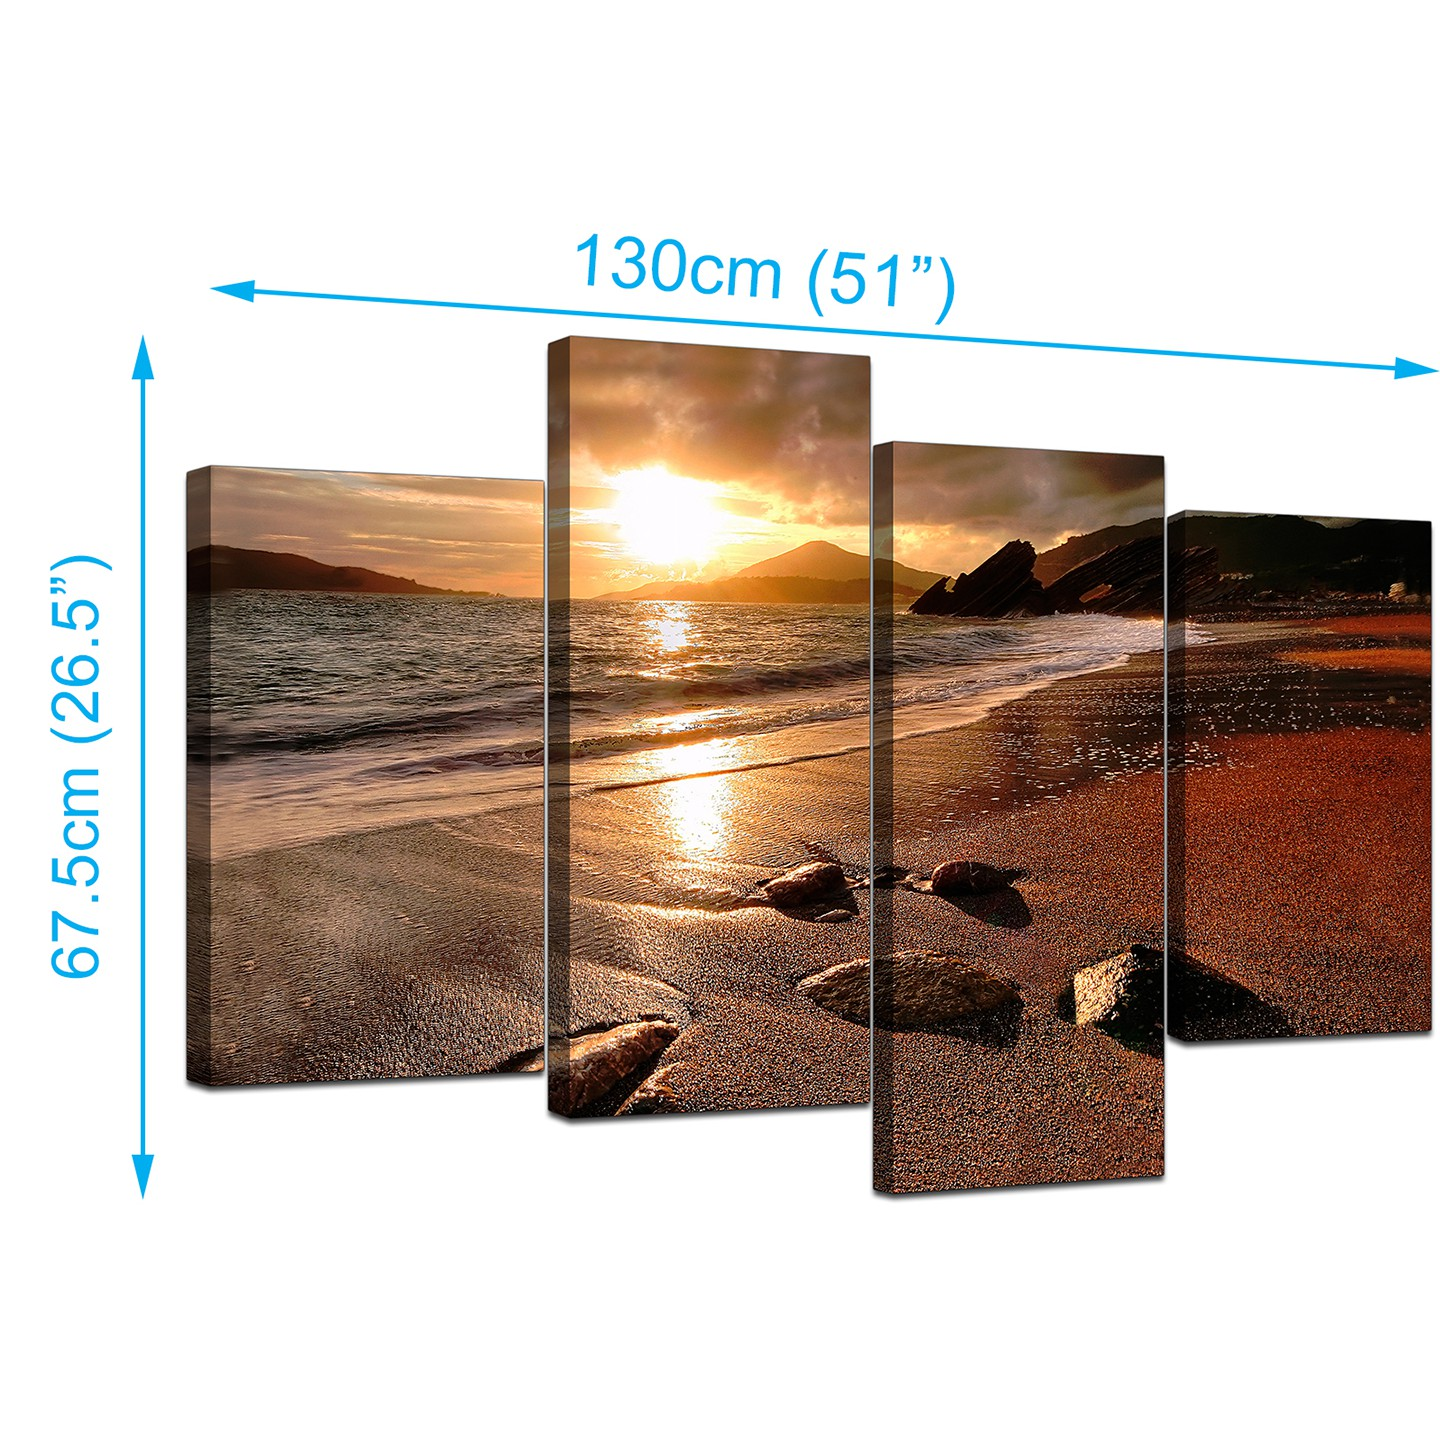 Purple And Teal Bedroom Canvas Art Of Beach Sunset For Your Living Room 4 Panel